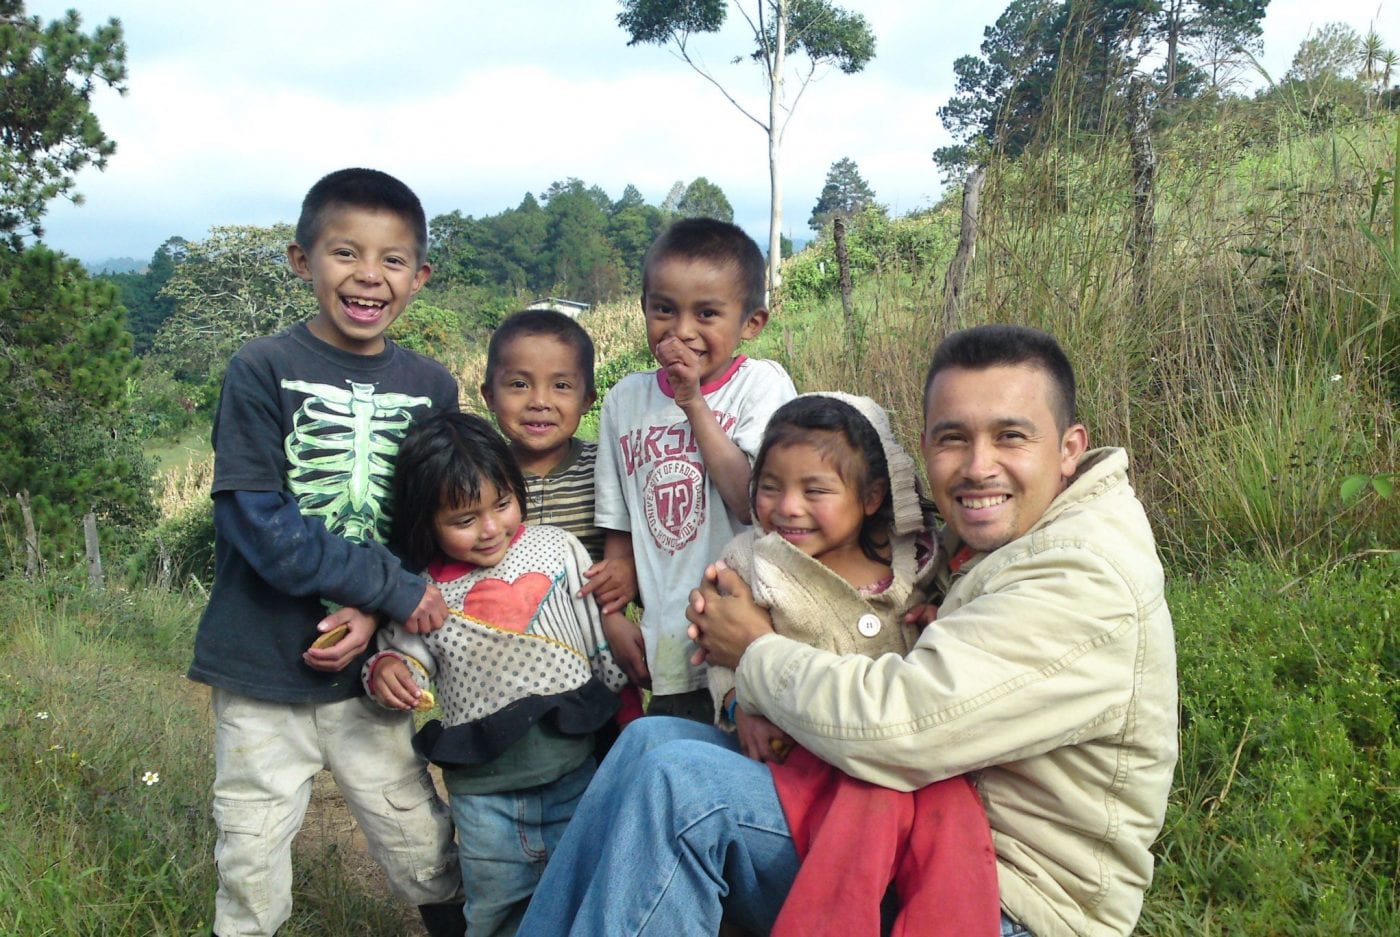 Manuel with his children on the farm